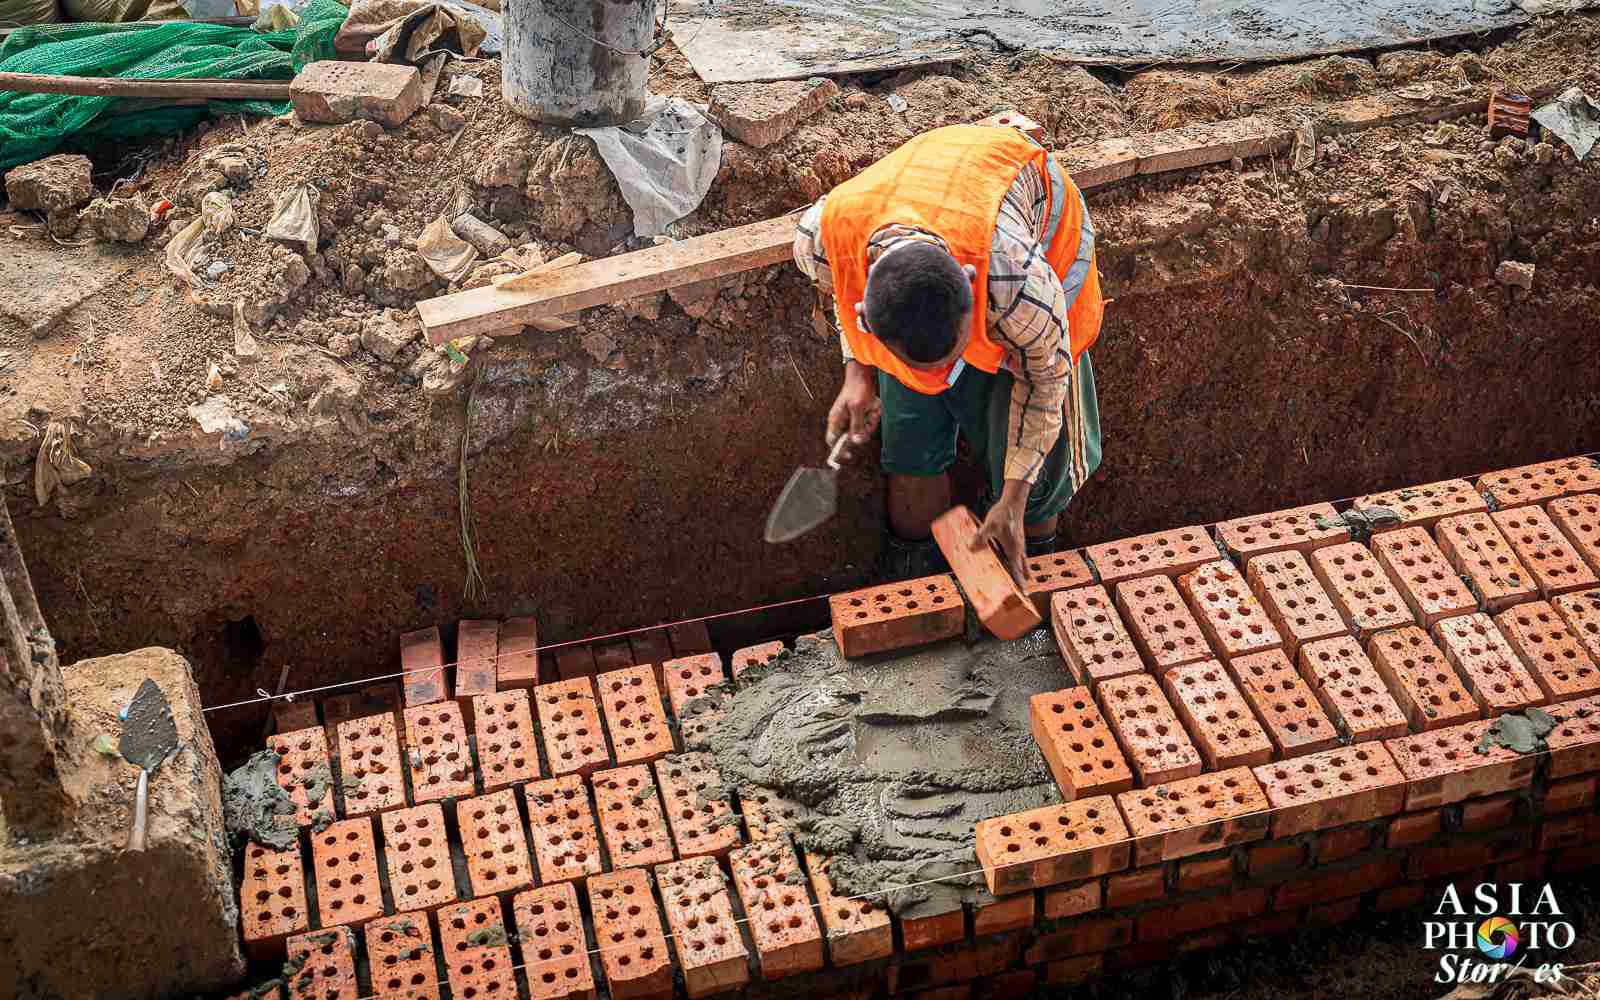 A bricklyaer builds a new platform at a Yangon train station.